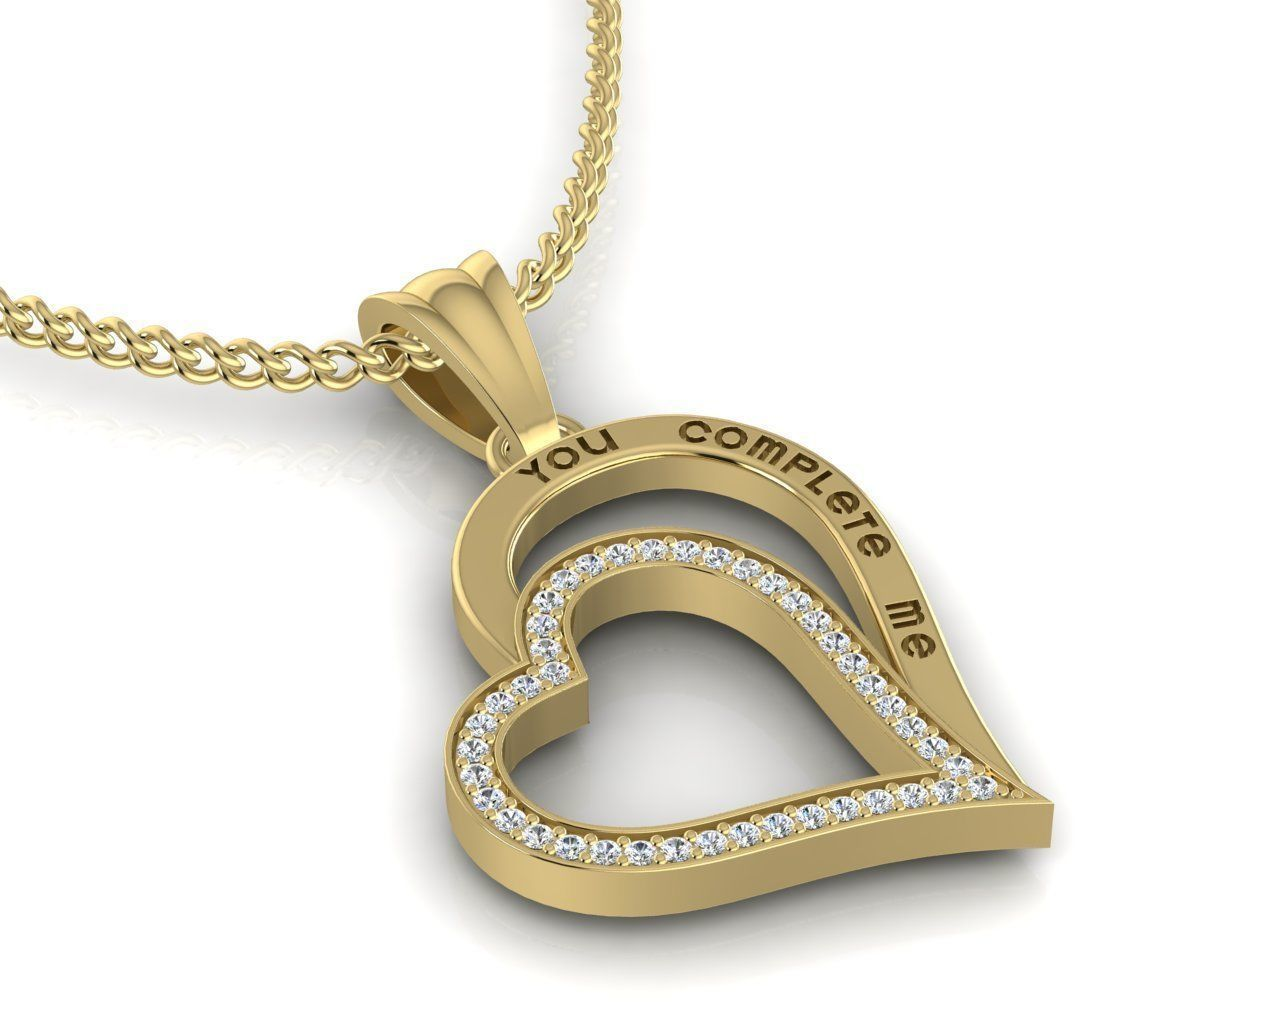 Pendant   YOU COMPLETE ME